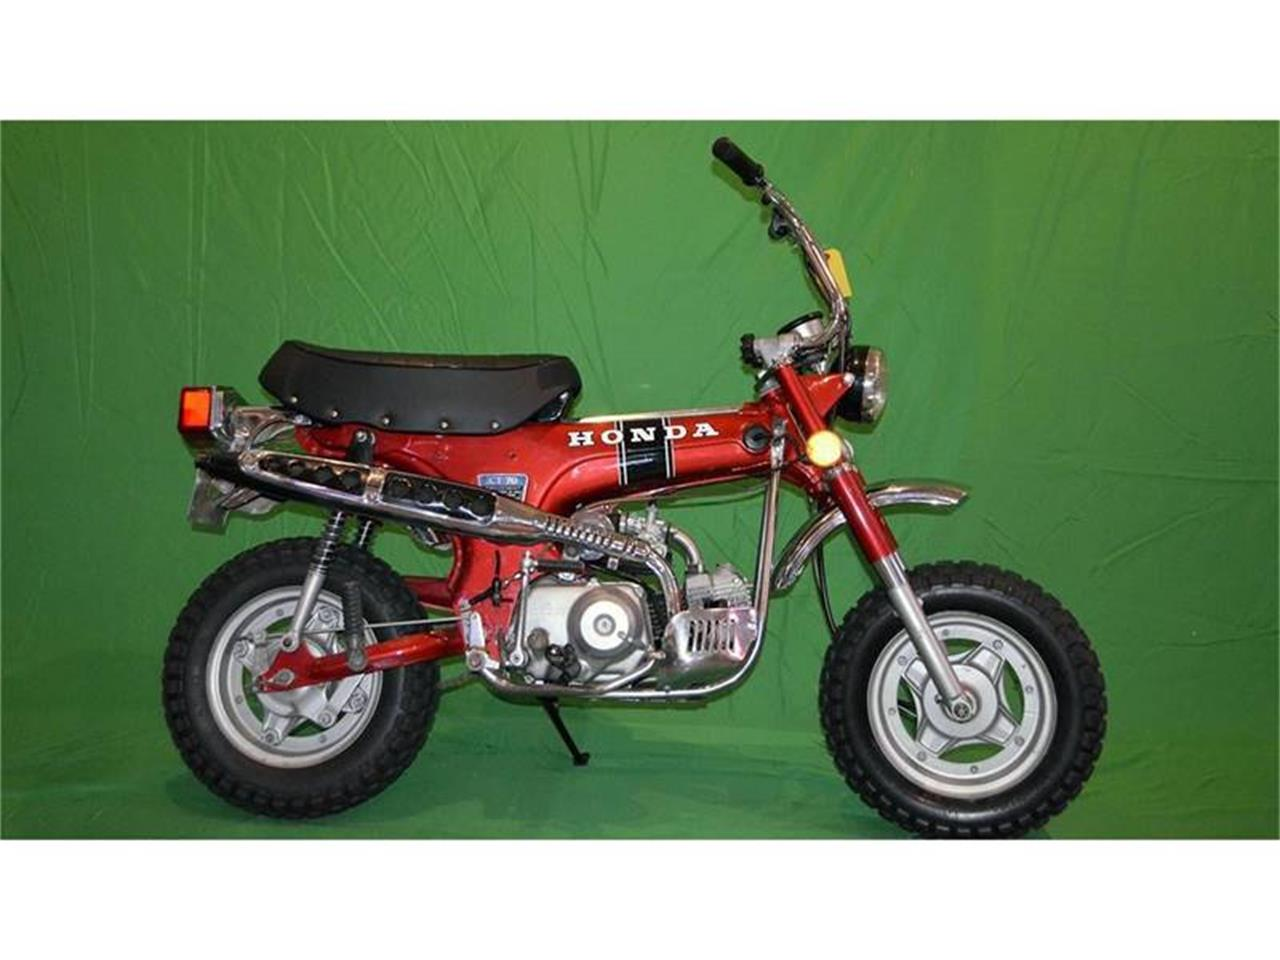 1972 Honda Motorcycle (CC-1261047) for sale in Conroe, Texas